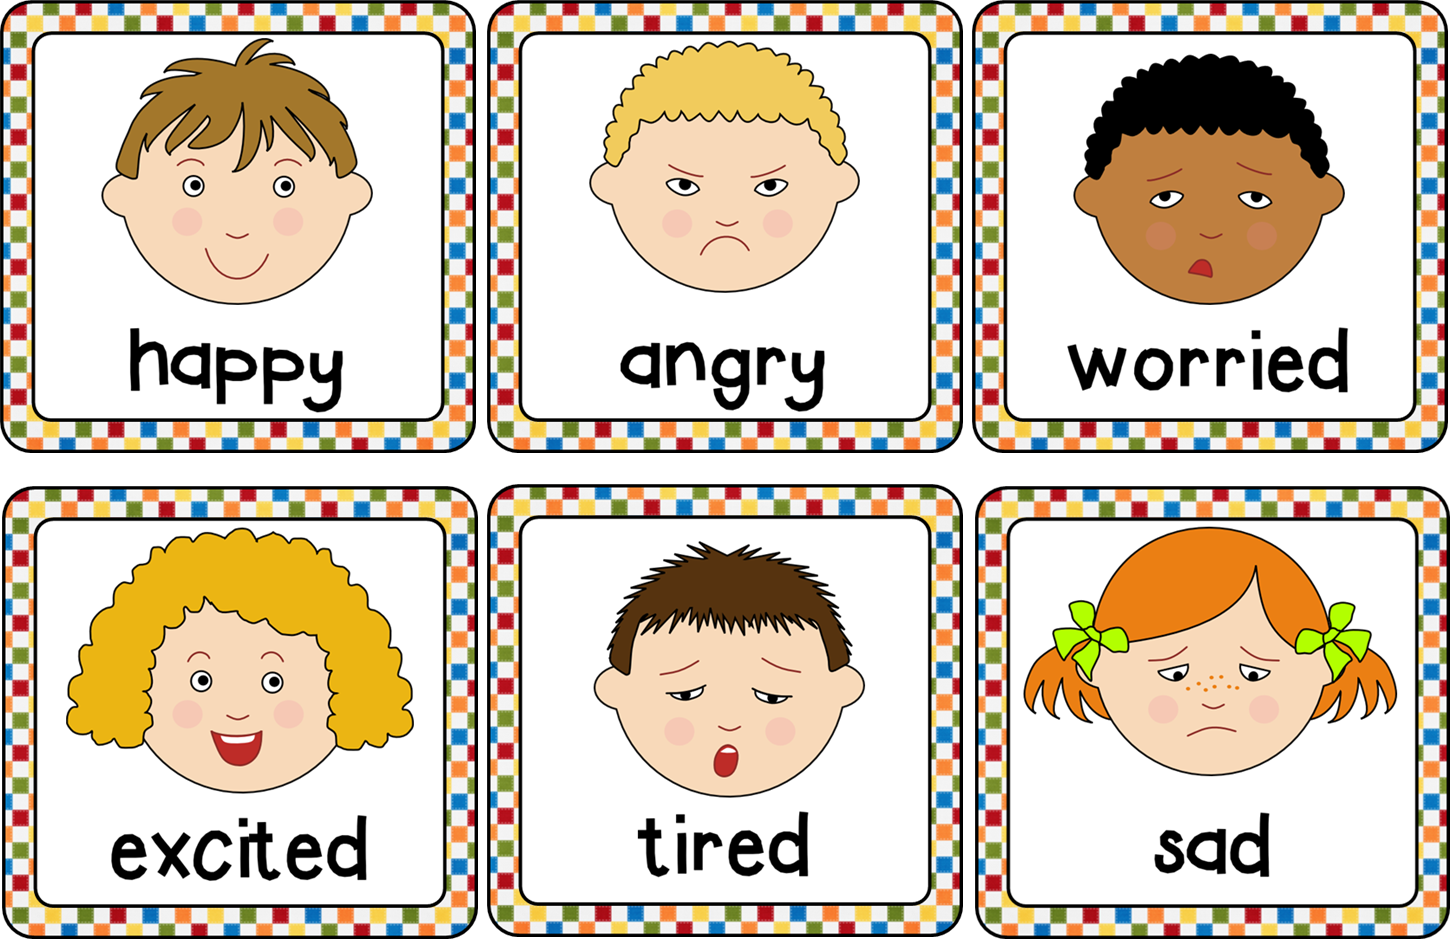 Emotions Cards Helps To Understand And Describe Different Emotions